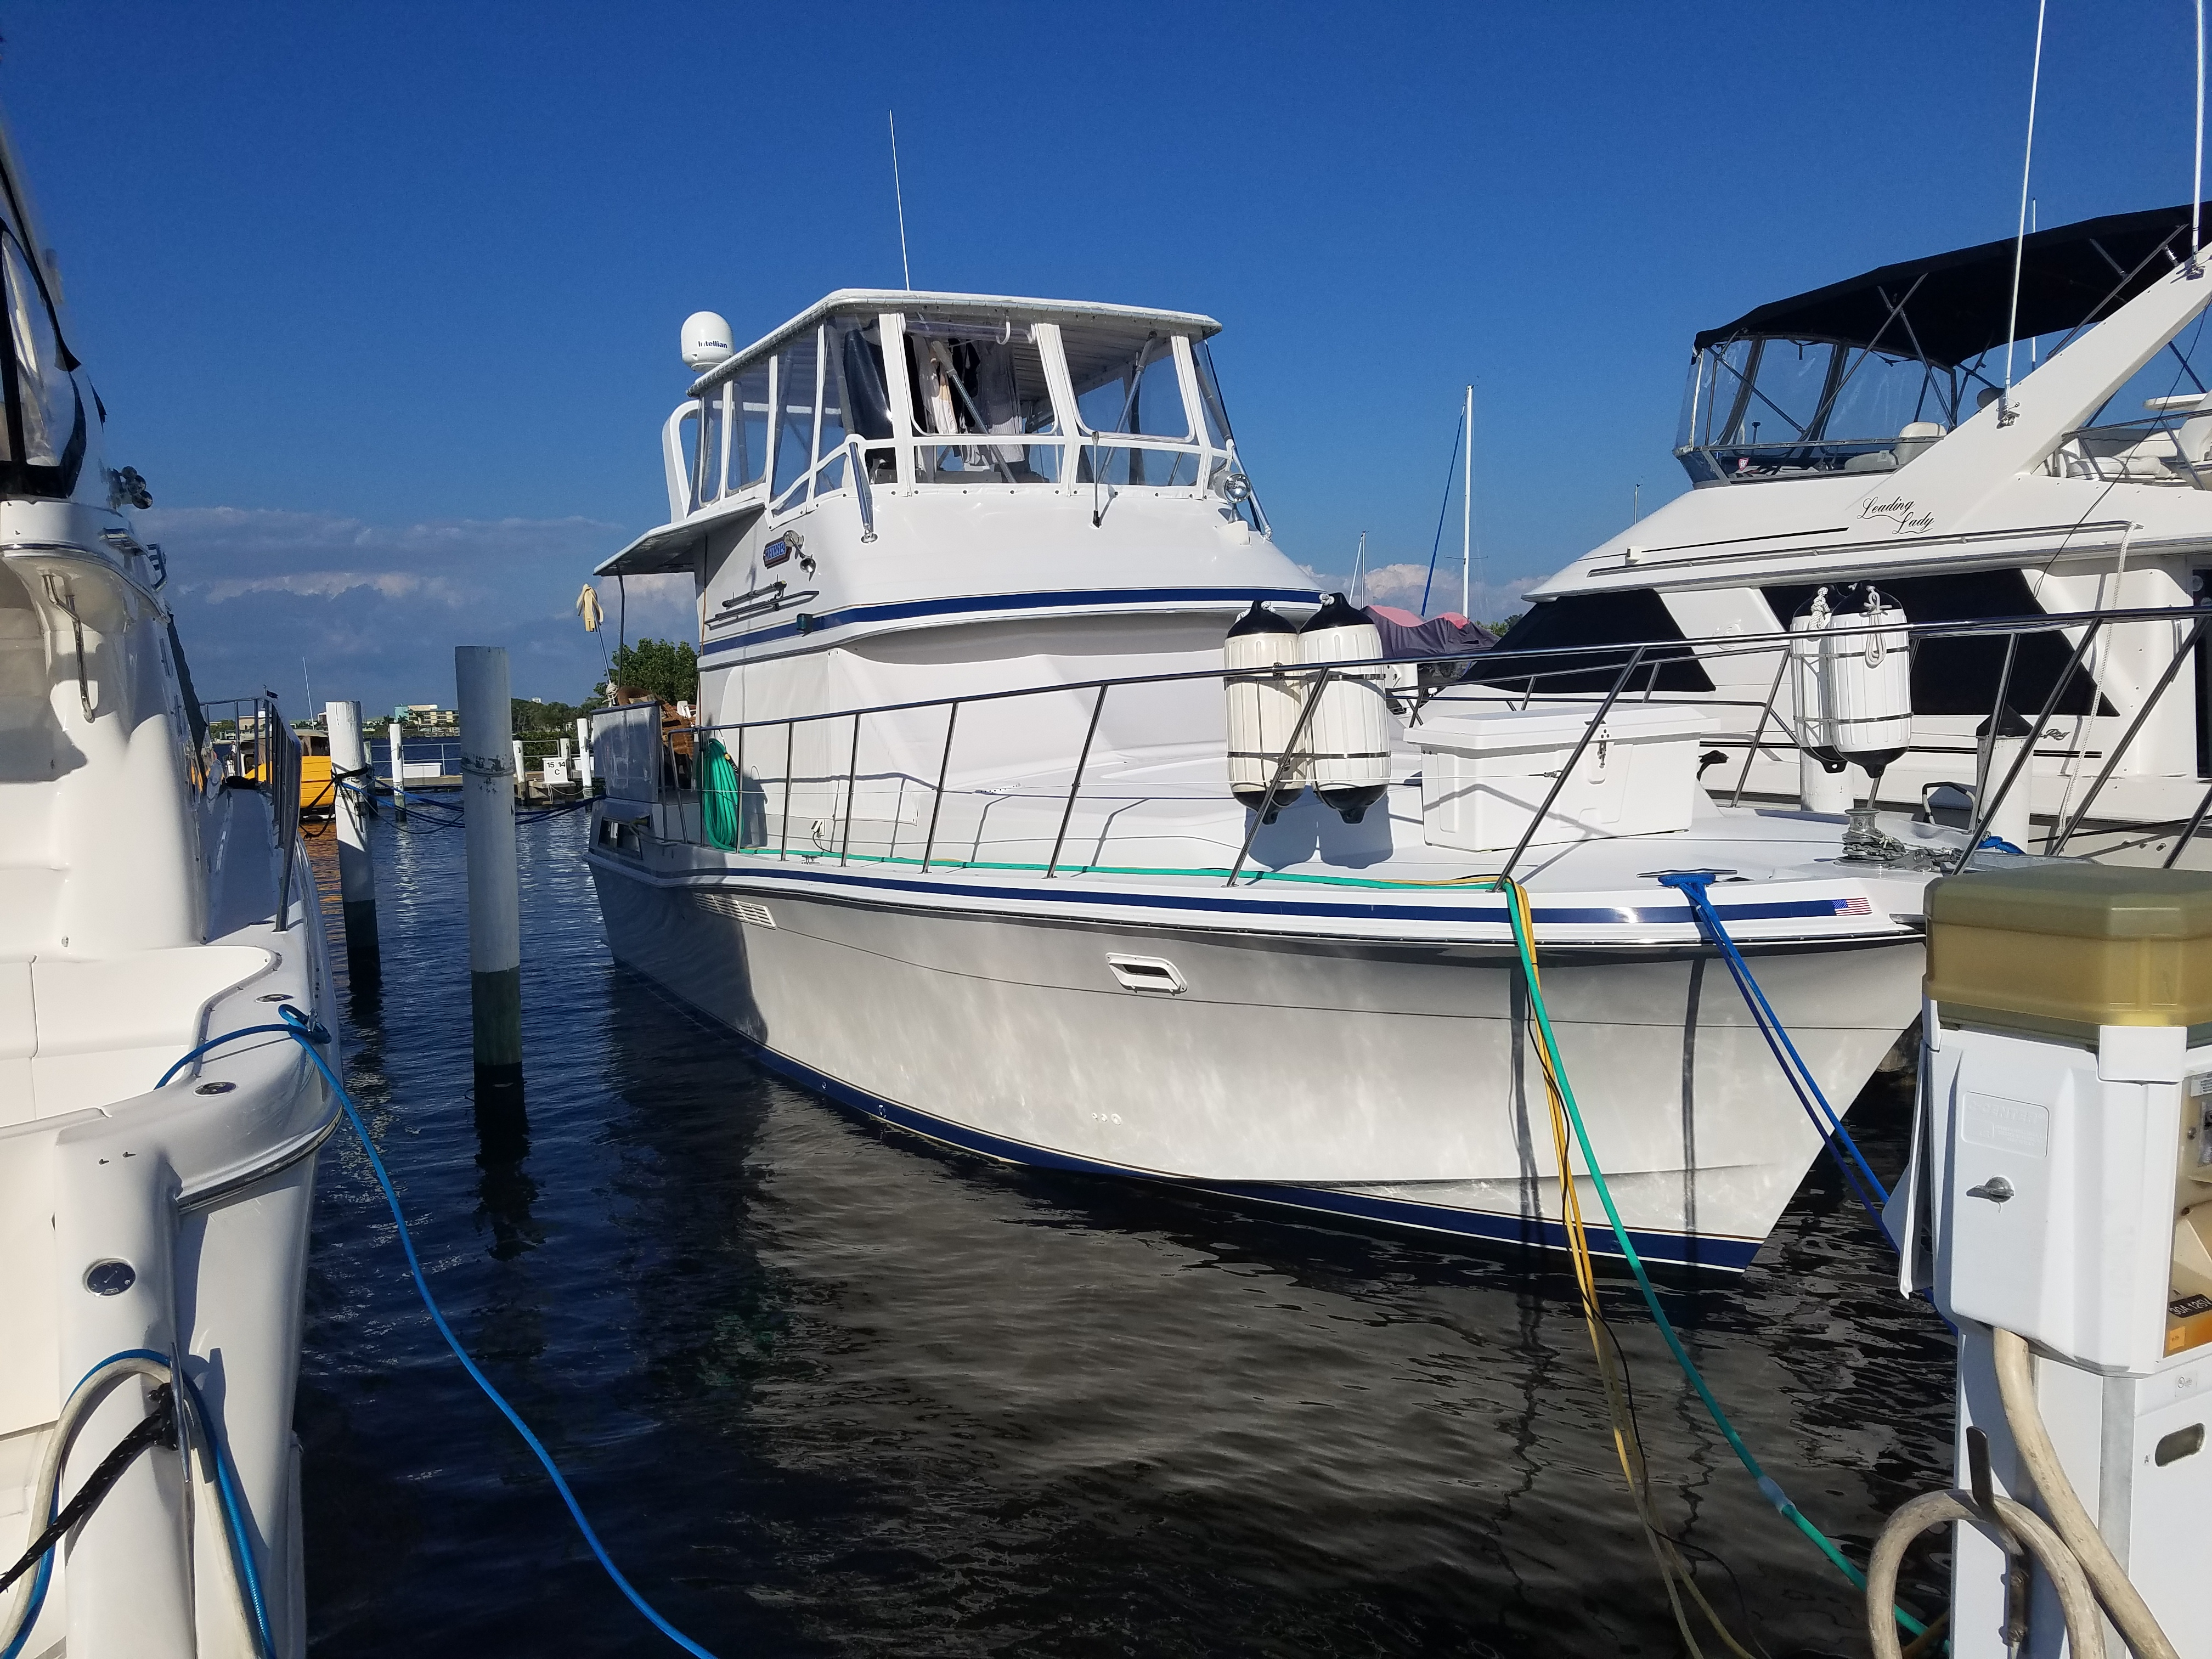 Chris-craft Catalina boats for sale - Boat Trader